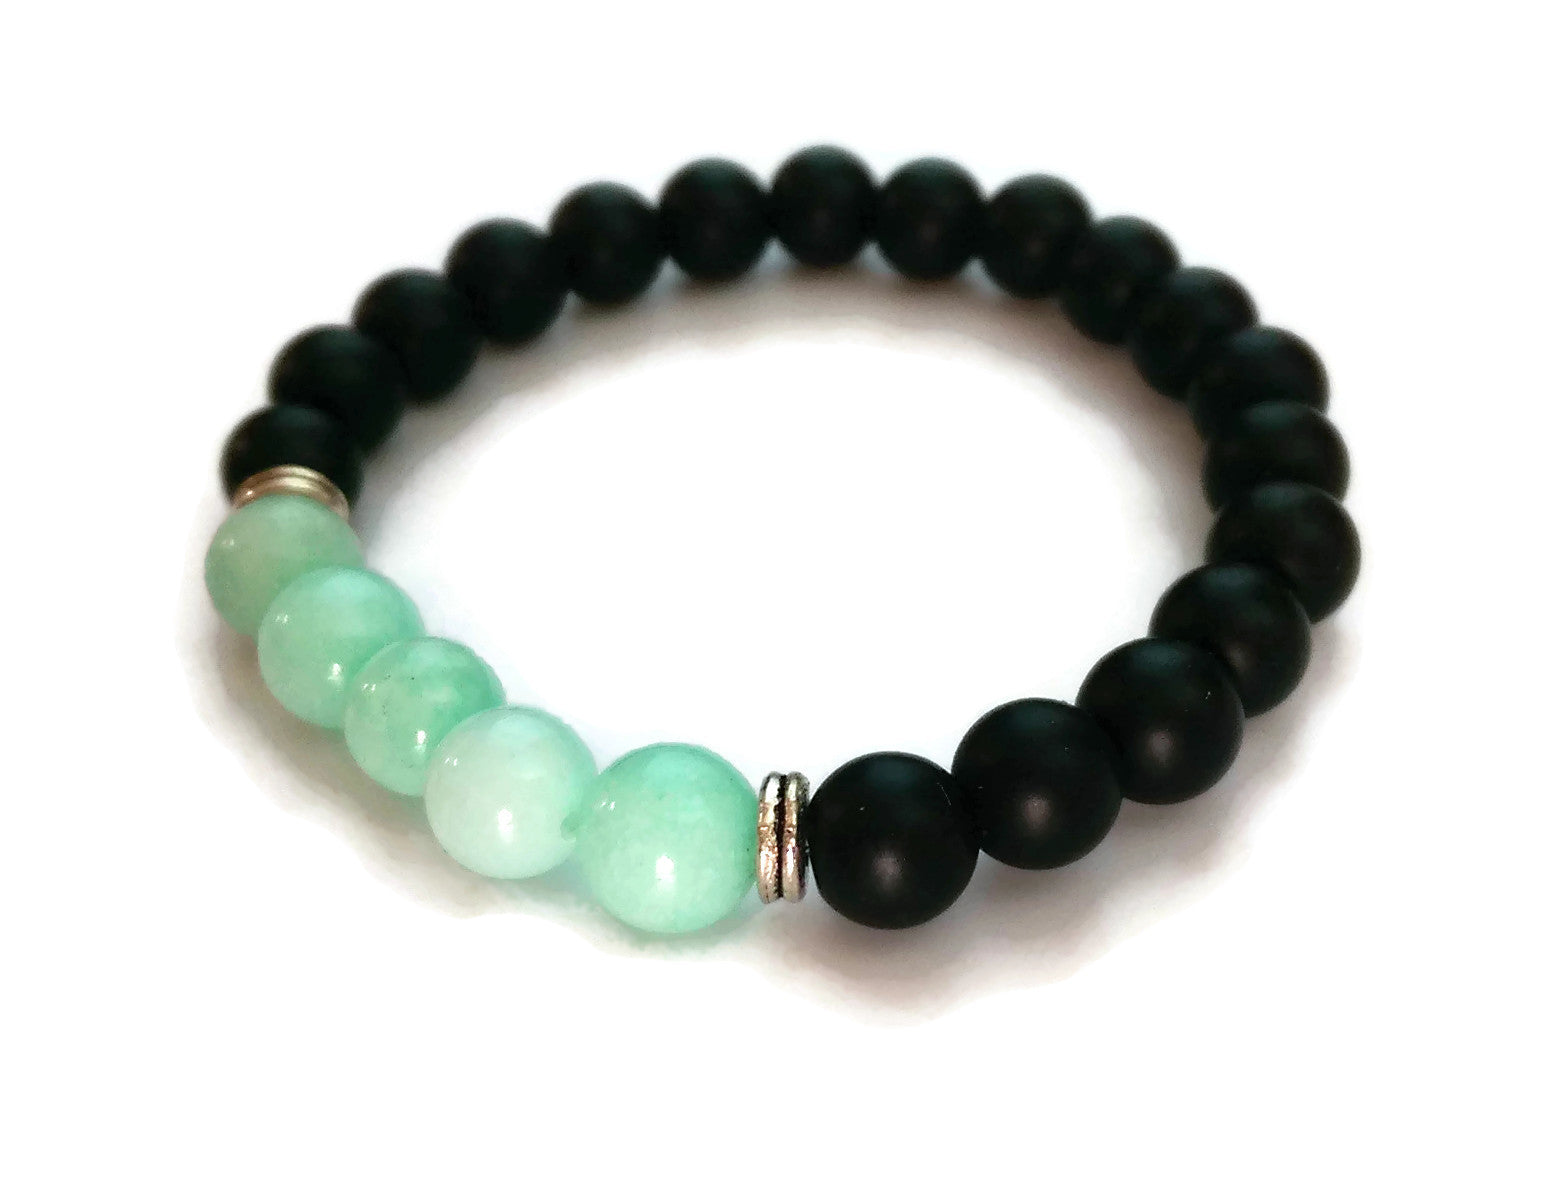 8mm Black Matte Obsidian and Amazonite Stone Silver Stretch Bracelet Minimal Meditation Yoga Stackable Wrist Mala Stretch  Throat Chakra